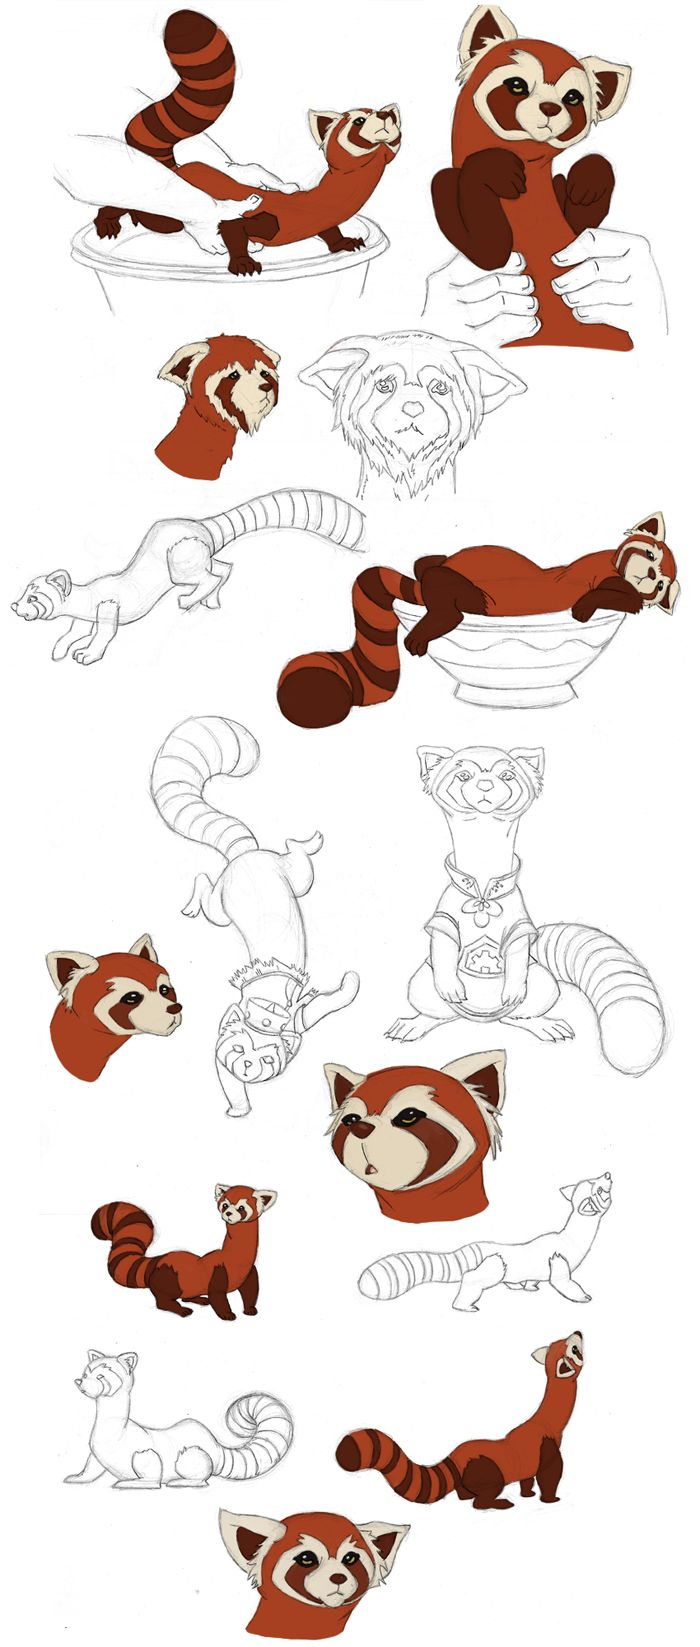 Drawn red panda small On Day Red deviantART of